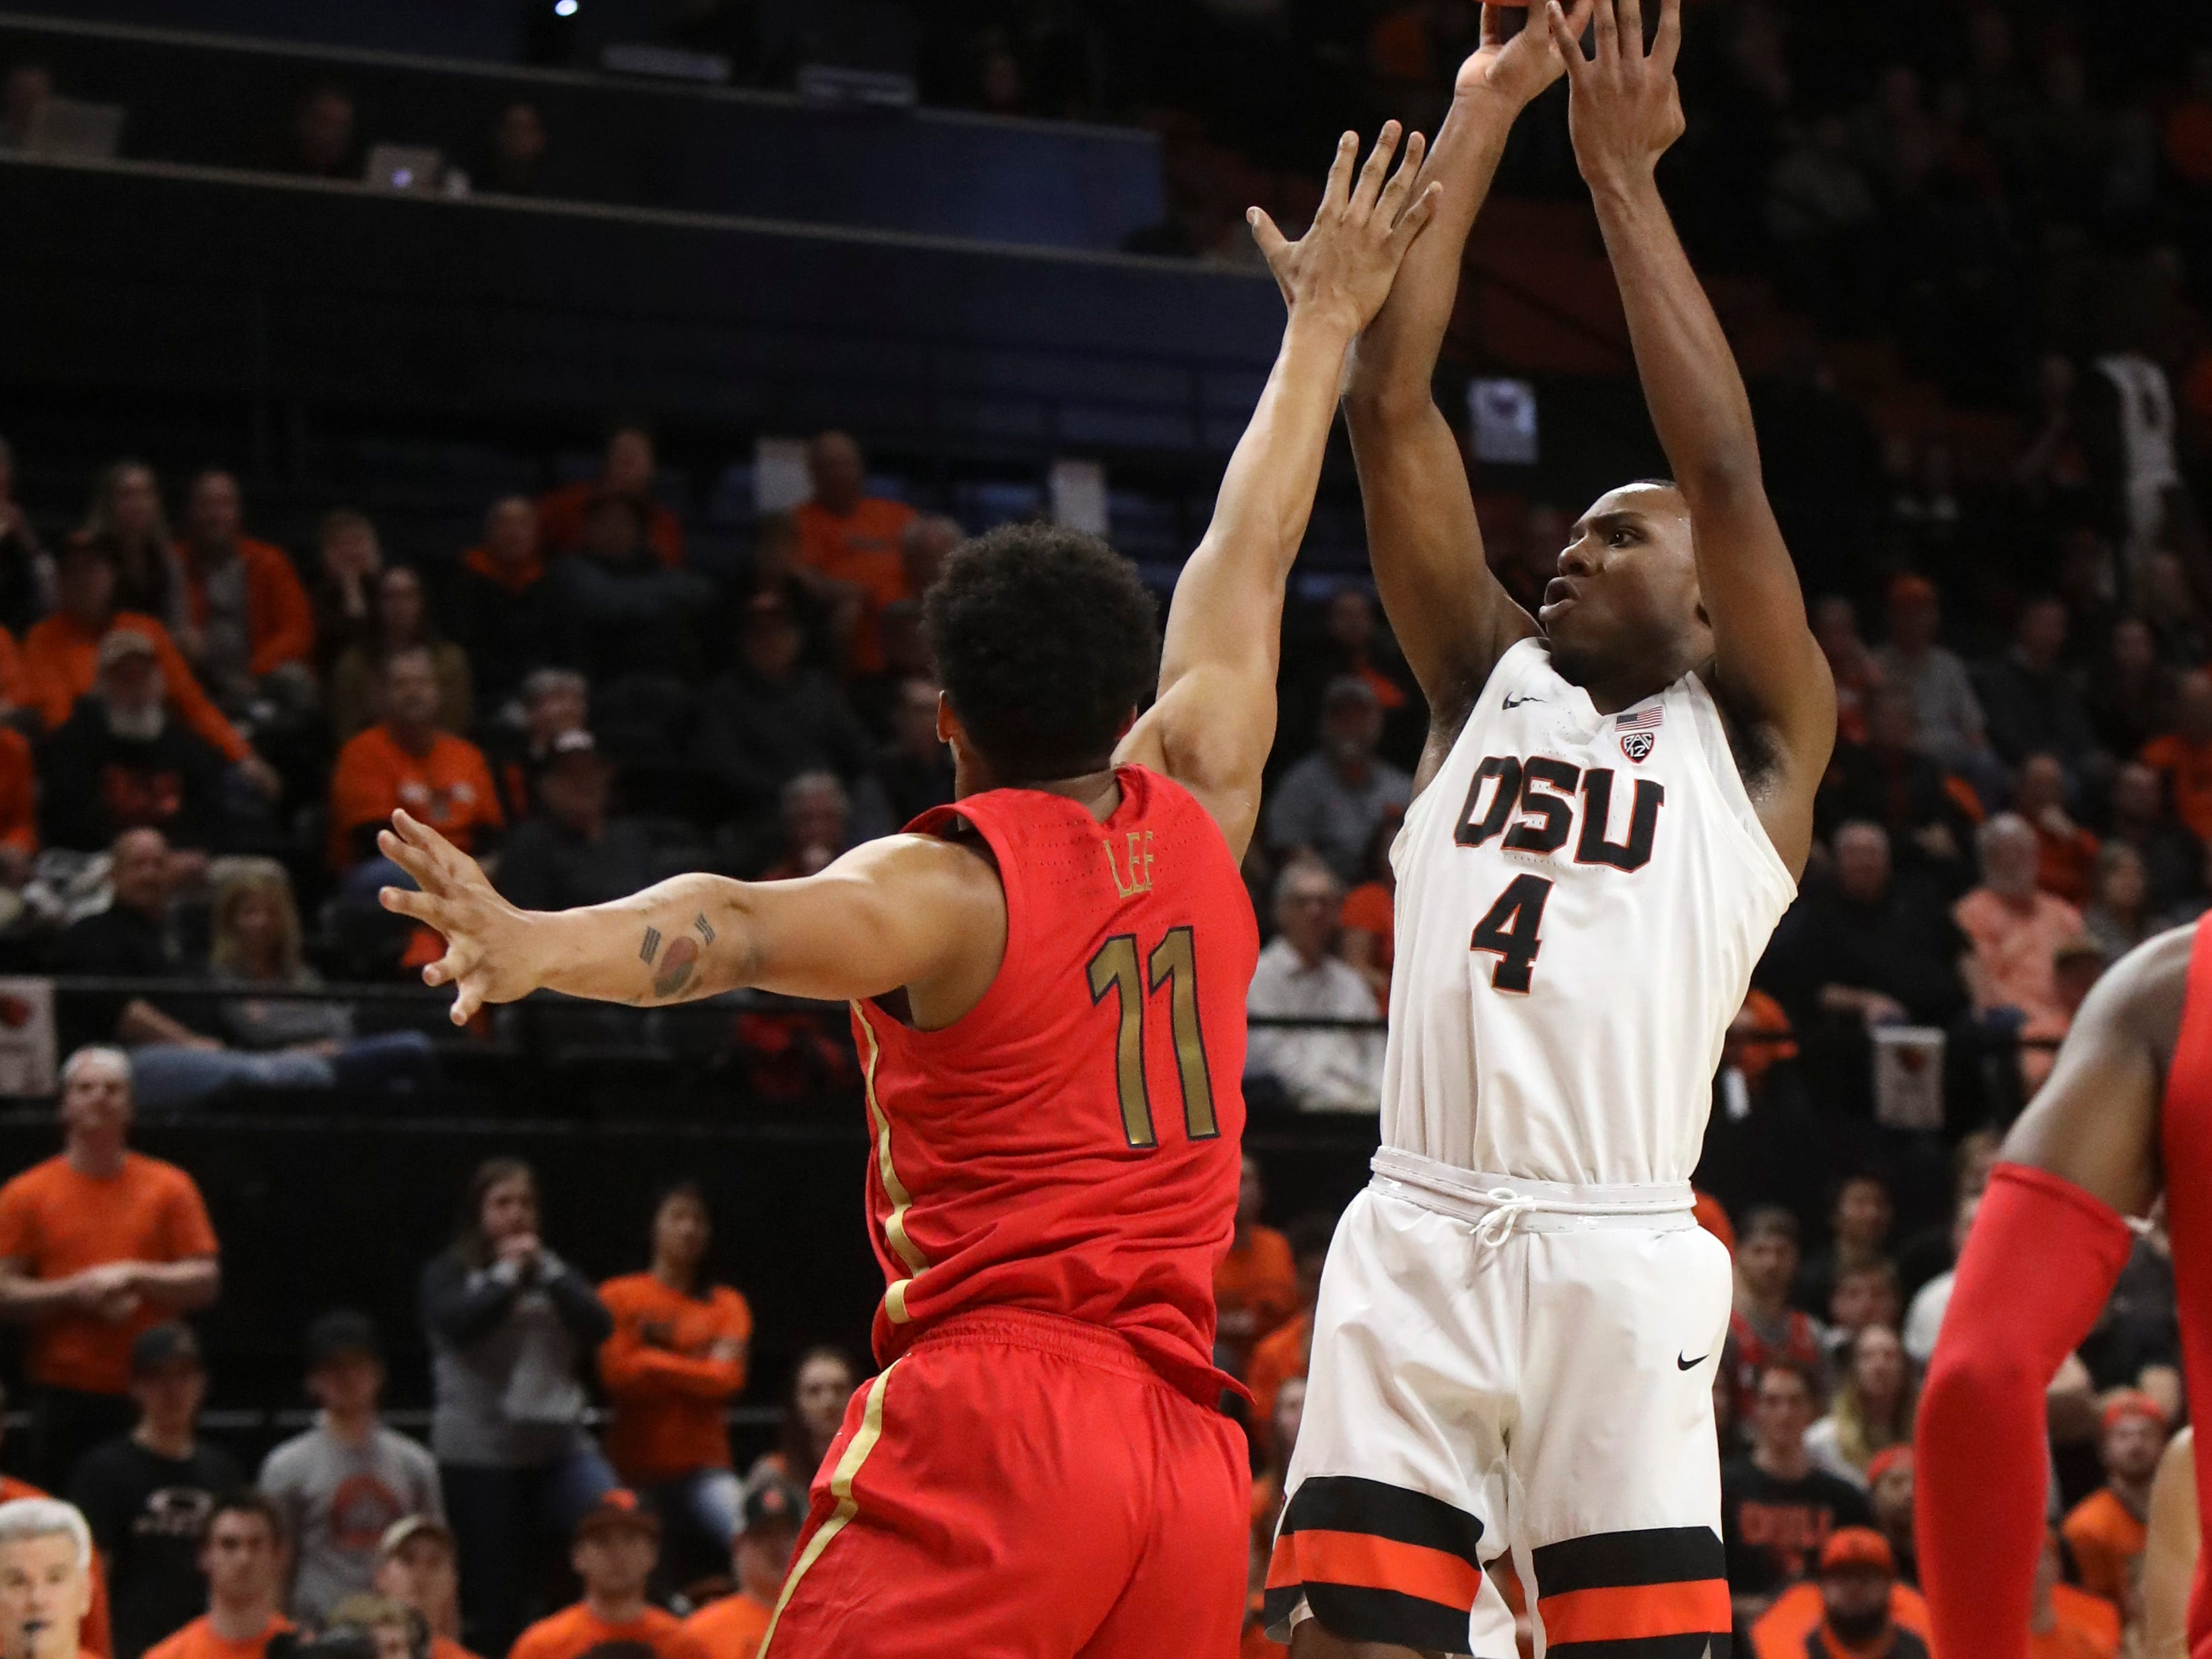 Oregon State's Alfred Hollins (4) takes a shot despite defense from Arizona's Ira Lee (11) during the first half of an NCAA college basketball game in Corvallis, Ore., Thursday, Feb. 28, 2019.